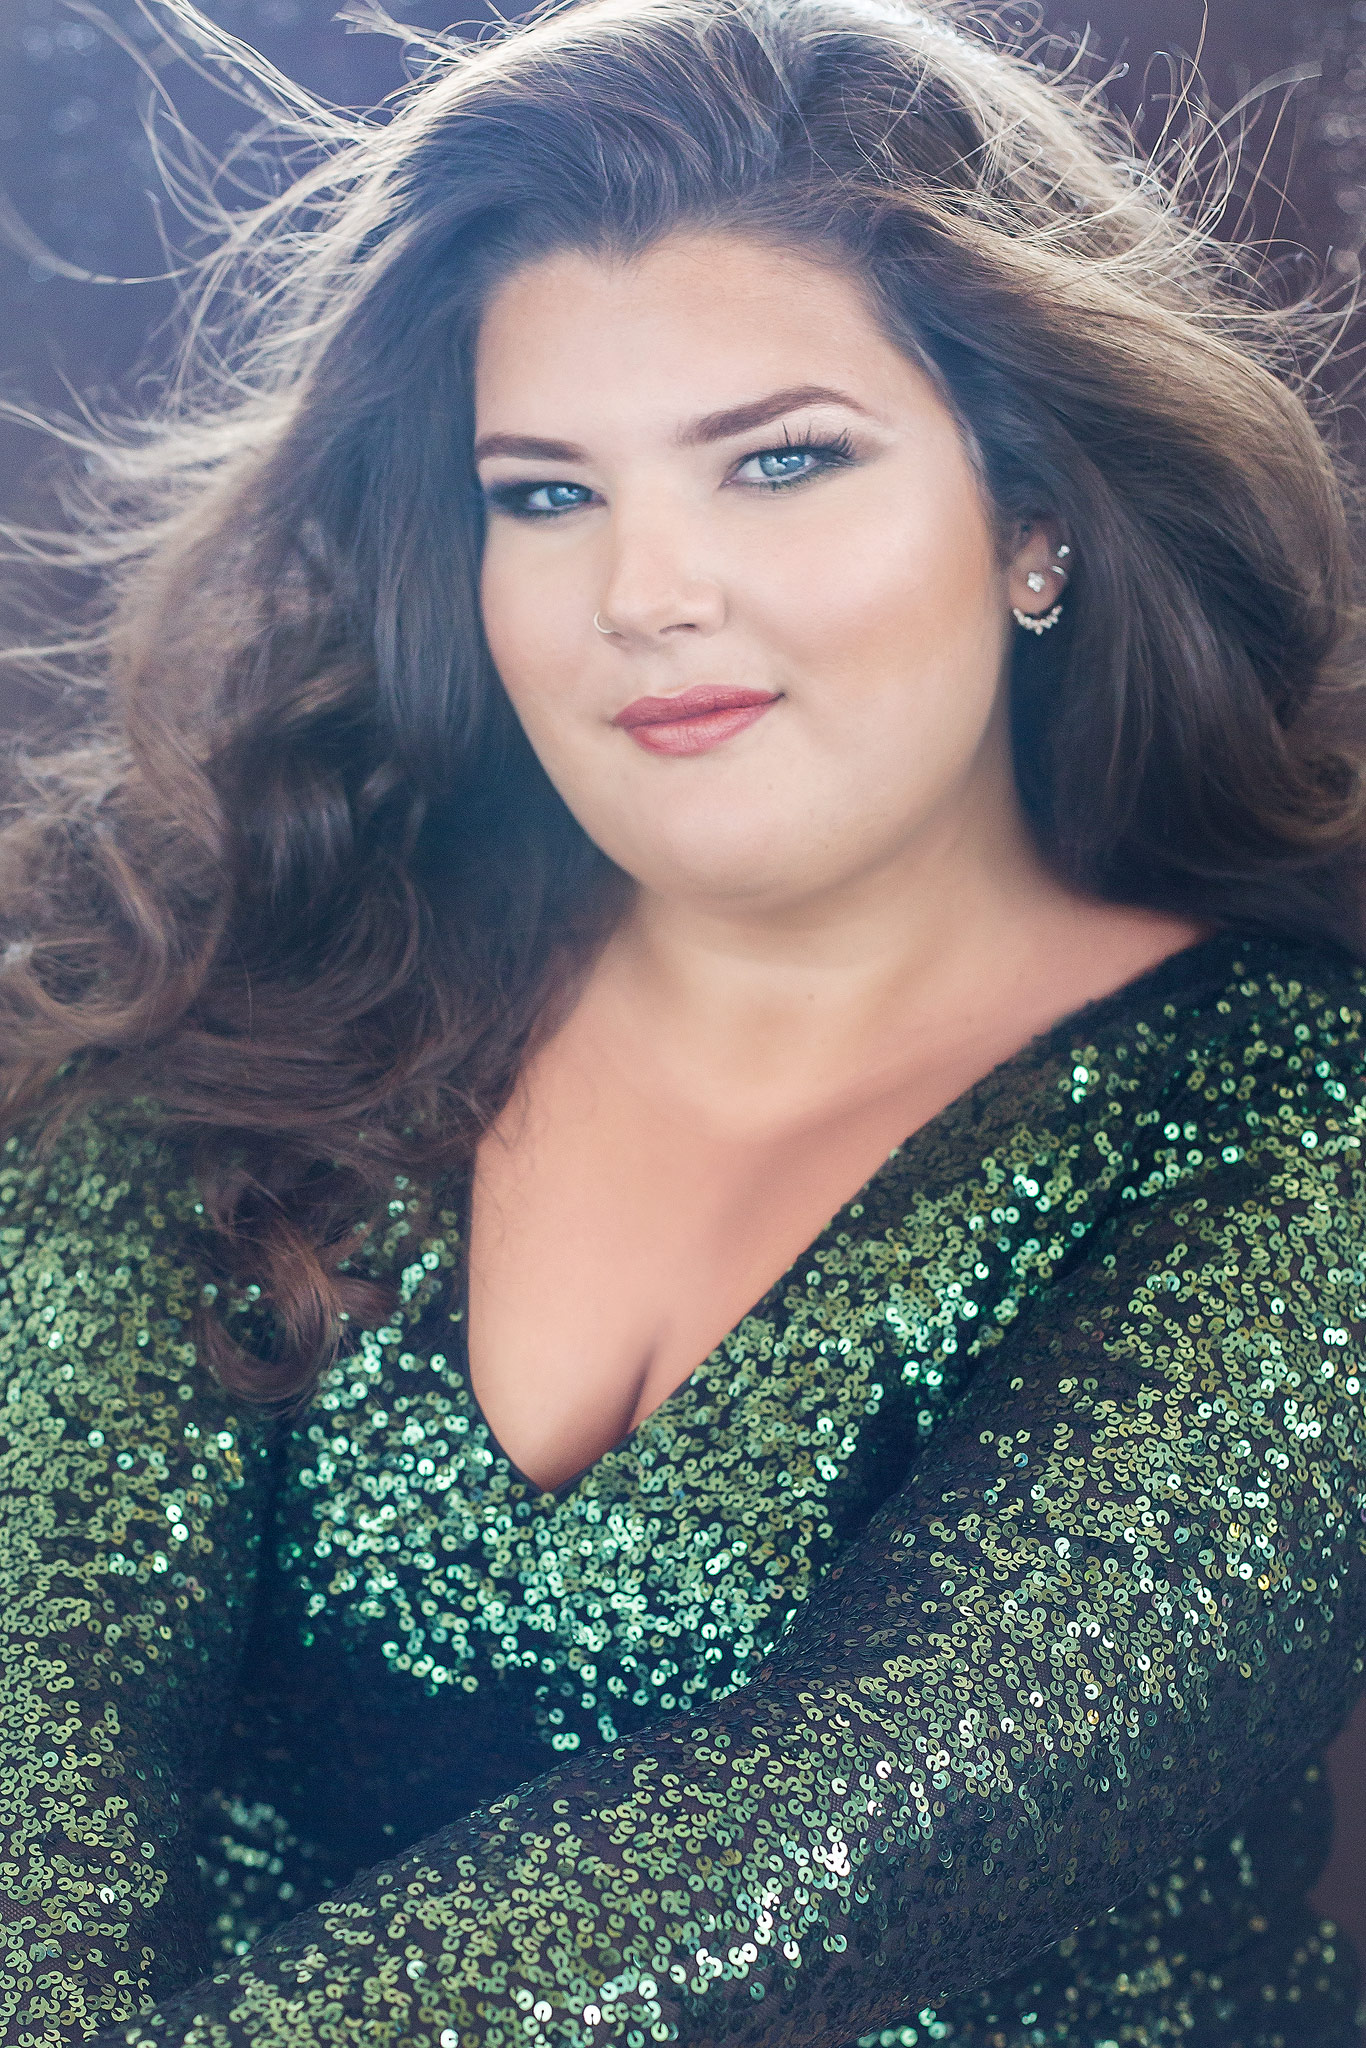 Rent-Frock-Repeat-Carole-B-Eves-Brittany-green-sparkly-dress-beauty-portrait